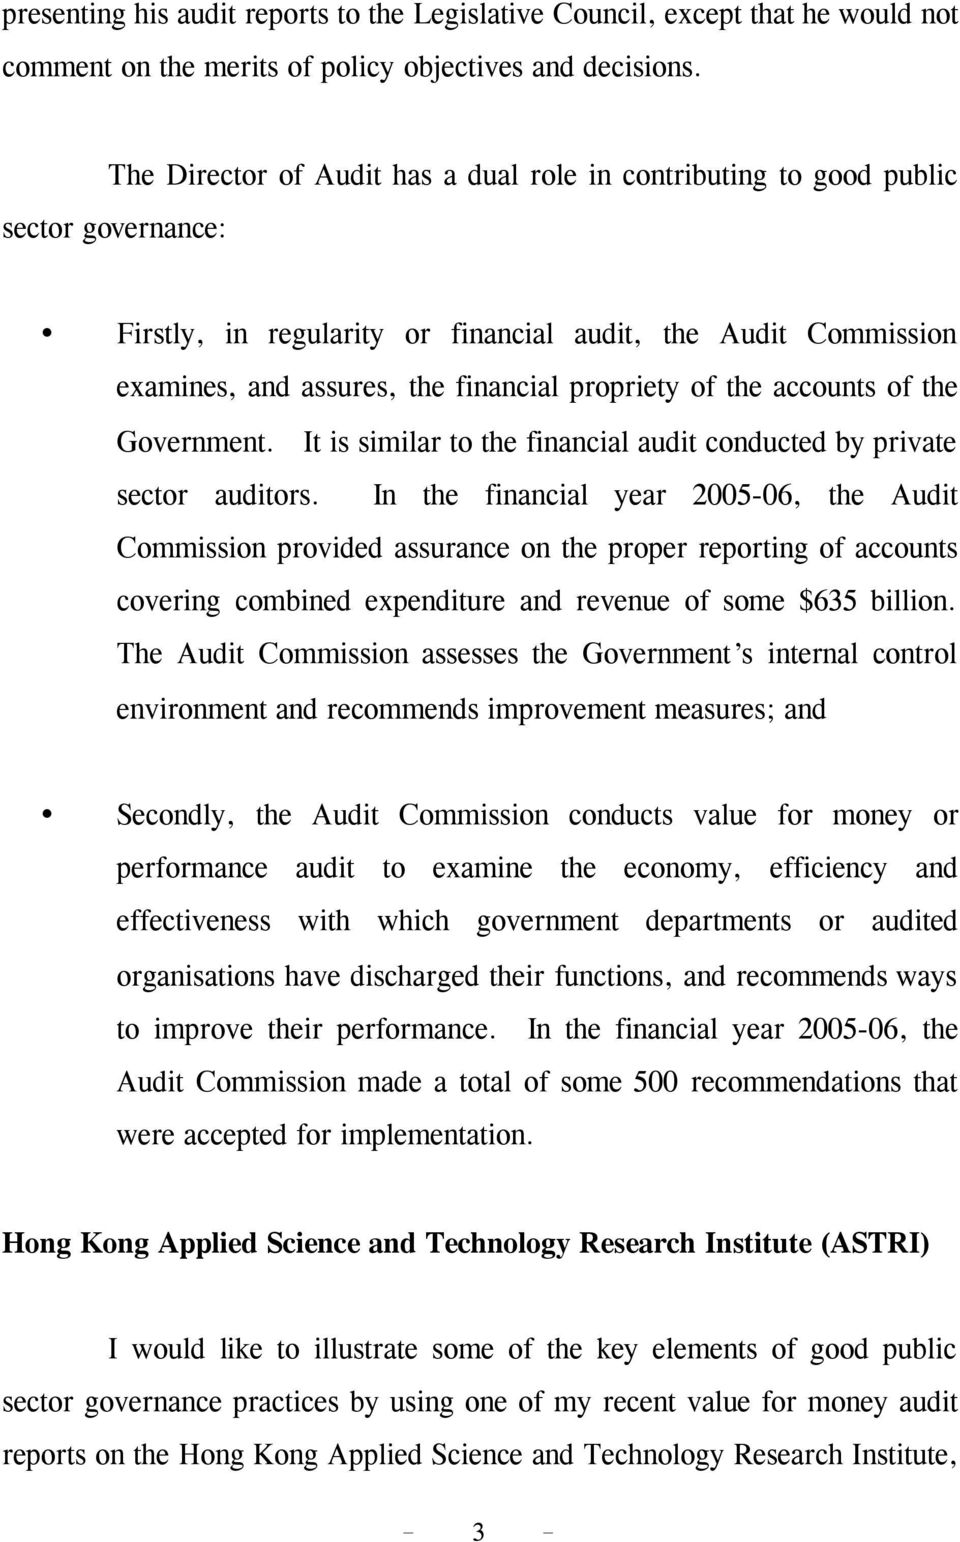 of the accounts of the Government. It is similar to the financial audit conducted by private sector auditors.